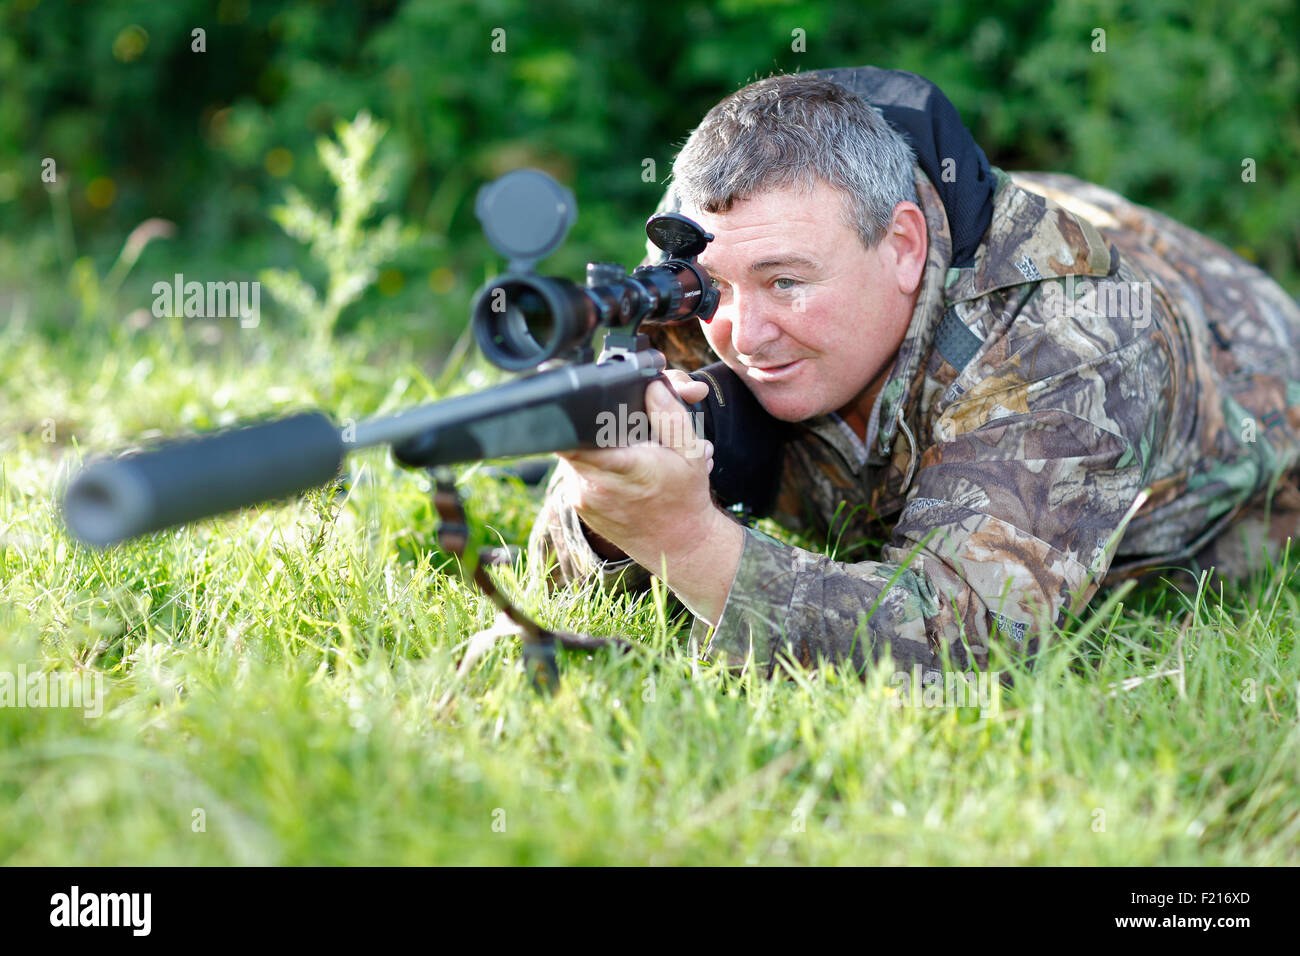 Sport, Gun, Shooting, Sniper wearing camoflage holding rifle with powerful scope and noise reduction muzzle. - Stock Image